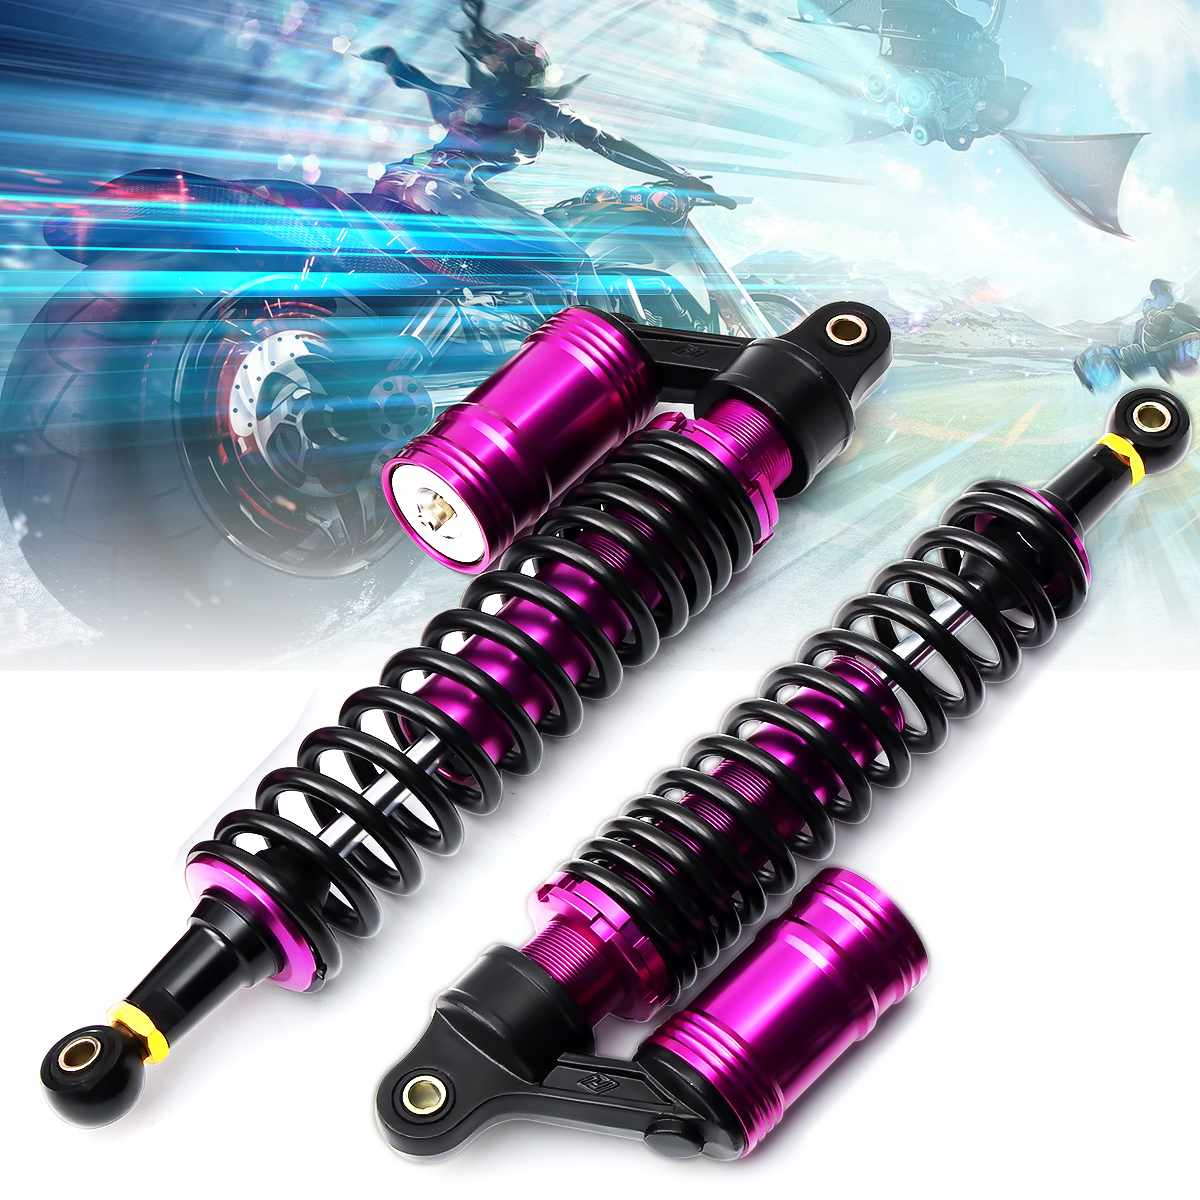 320mm Motorcycle Rear Shock Absorber Air Suspension For Yamaha YFZ 450 Ducati